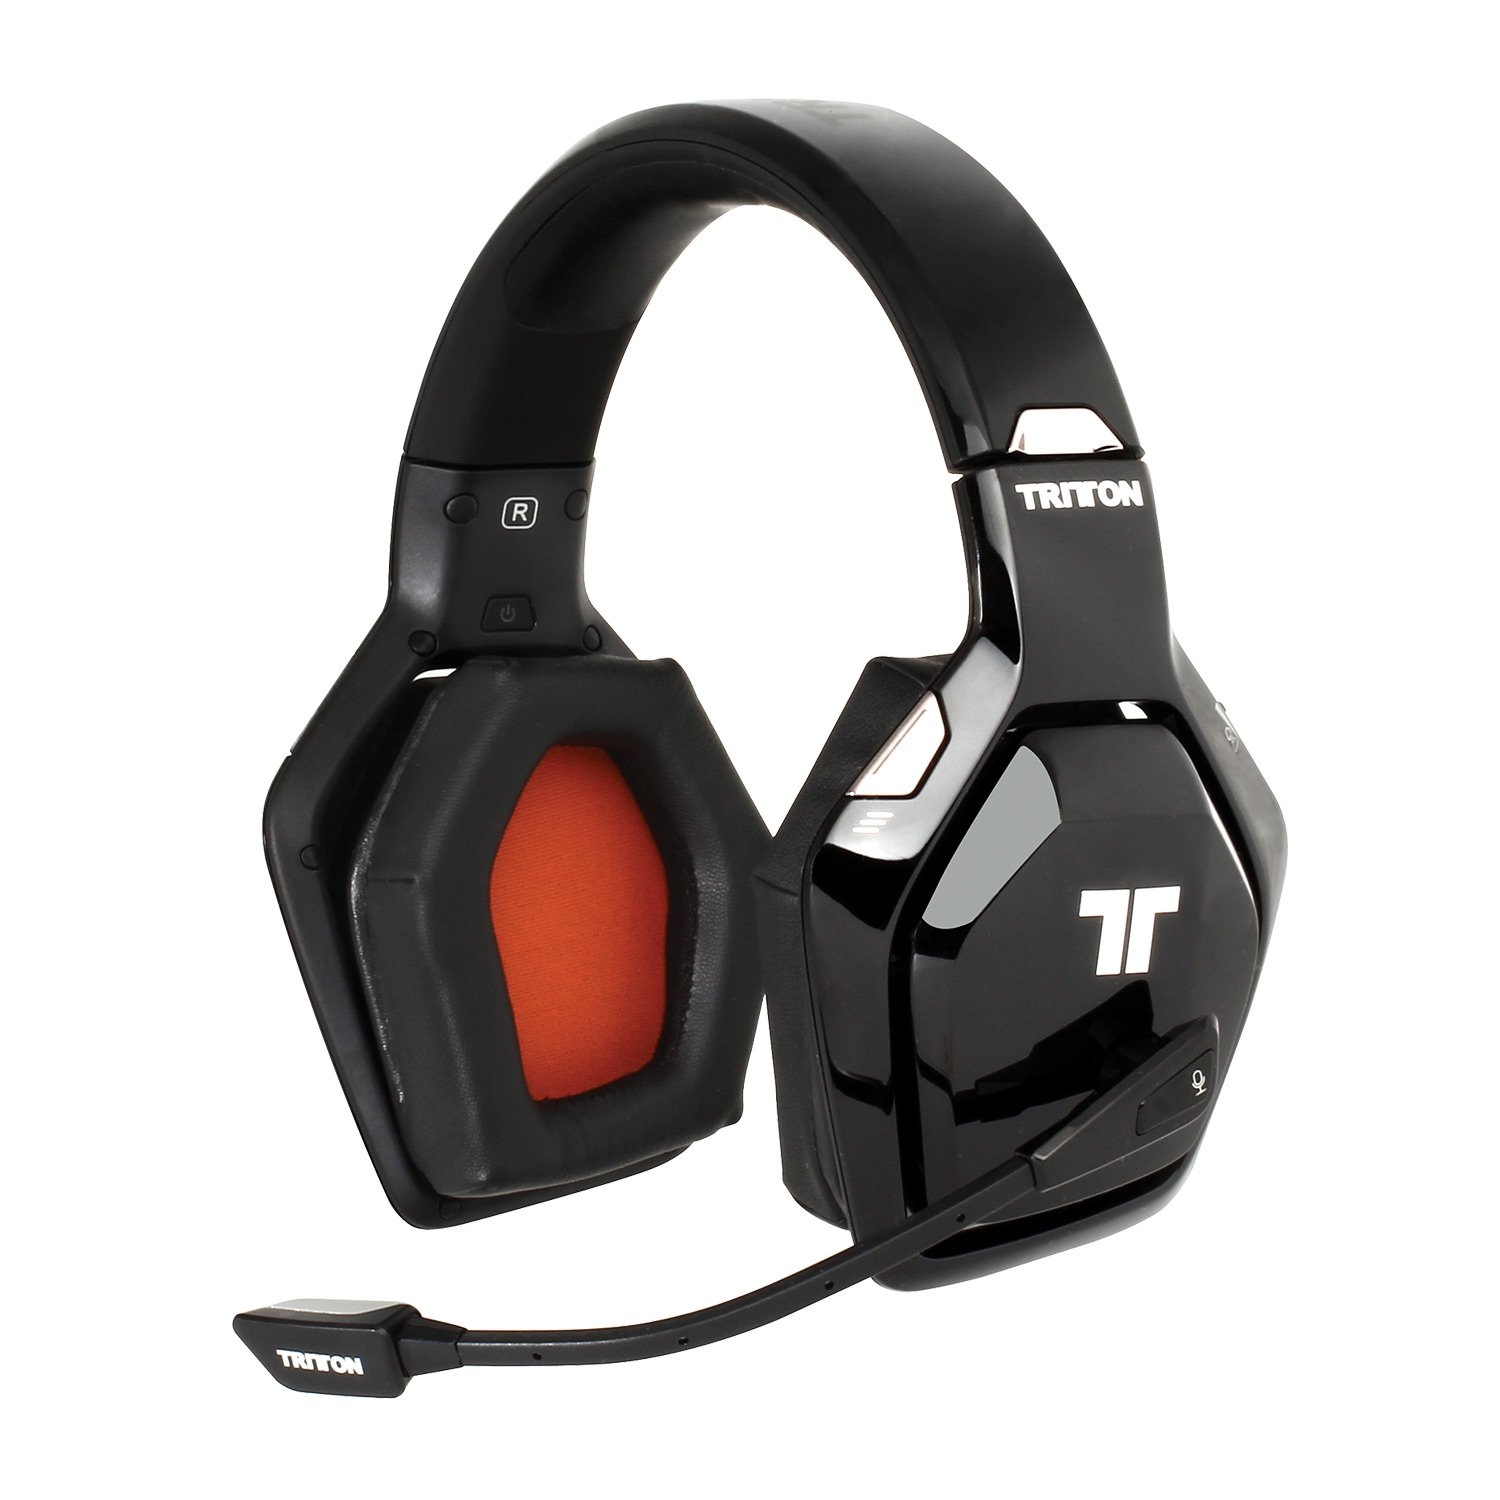 casque tritton ps4. Black Bedroom Furniture Sets. Home Design Ideas